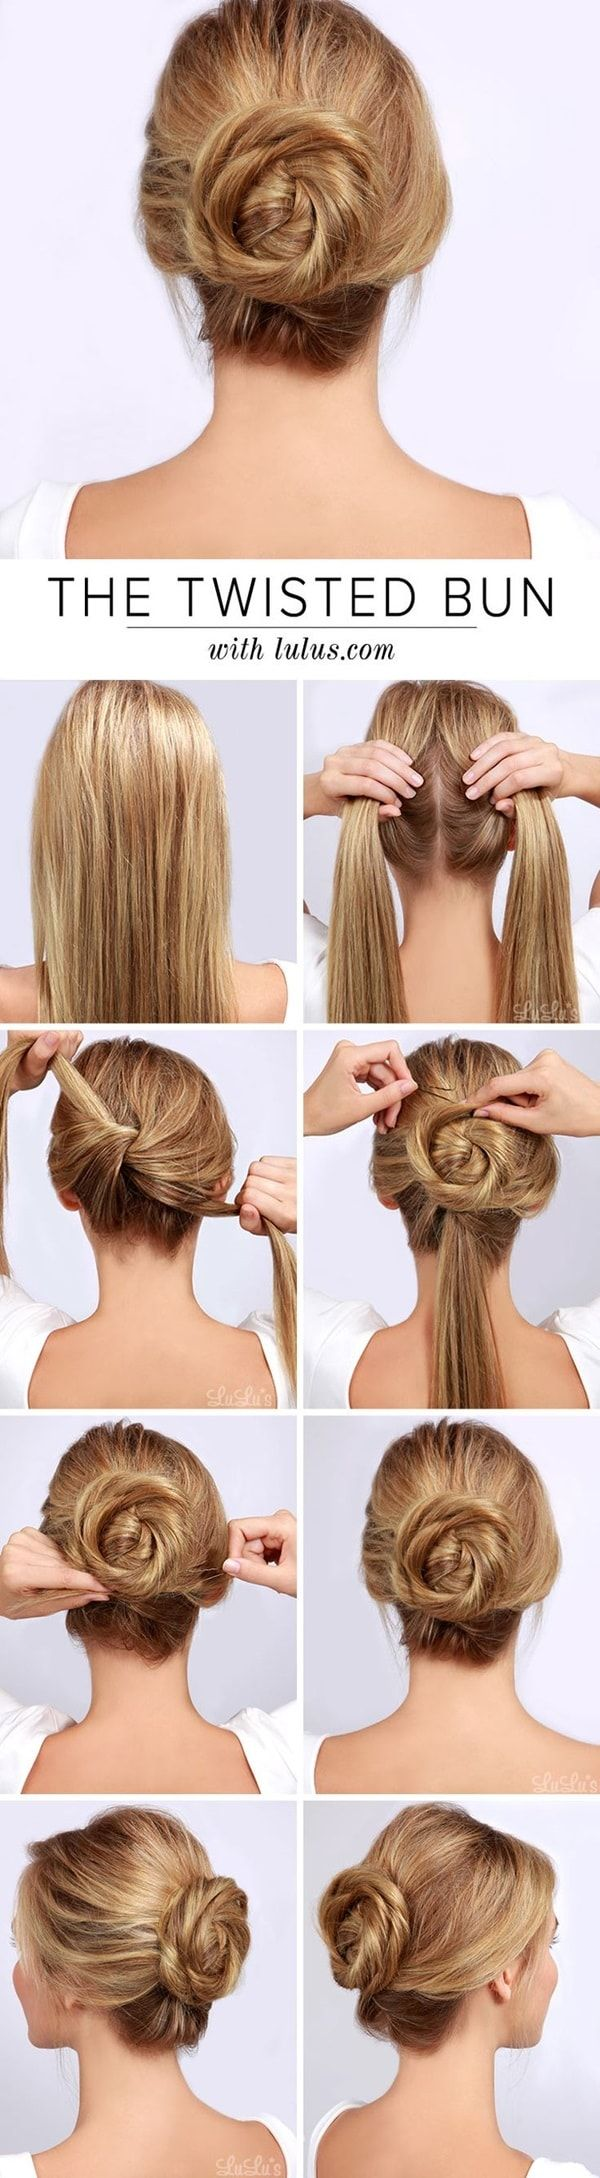 Quick and easy hairstyles for girls step by step guide